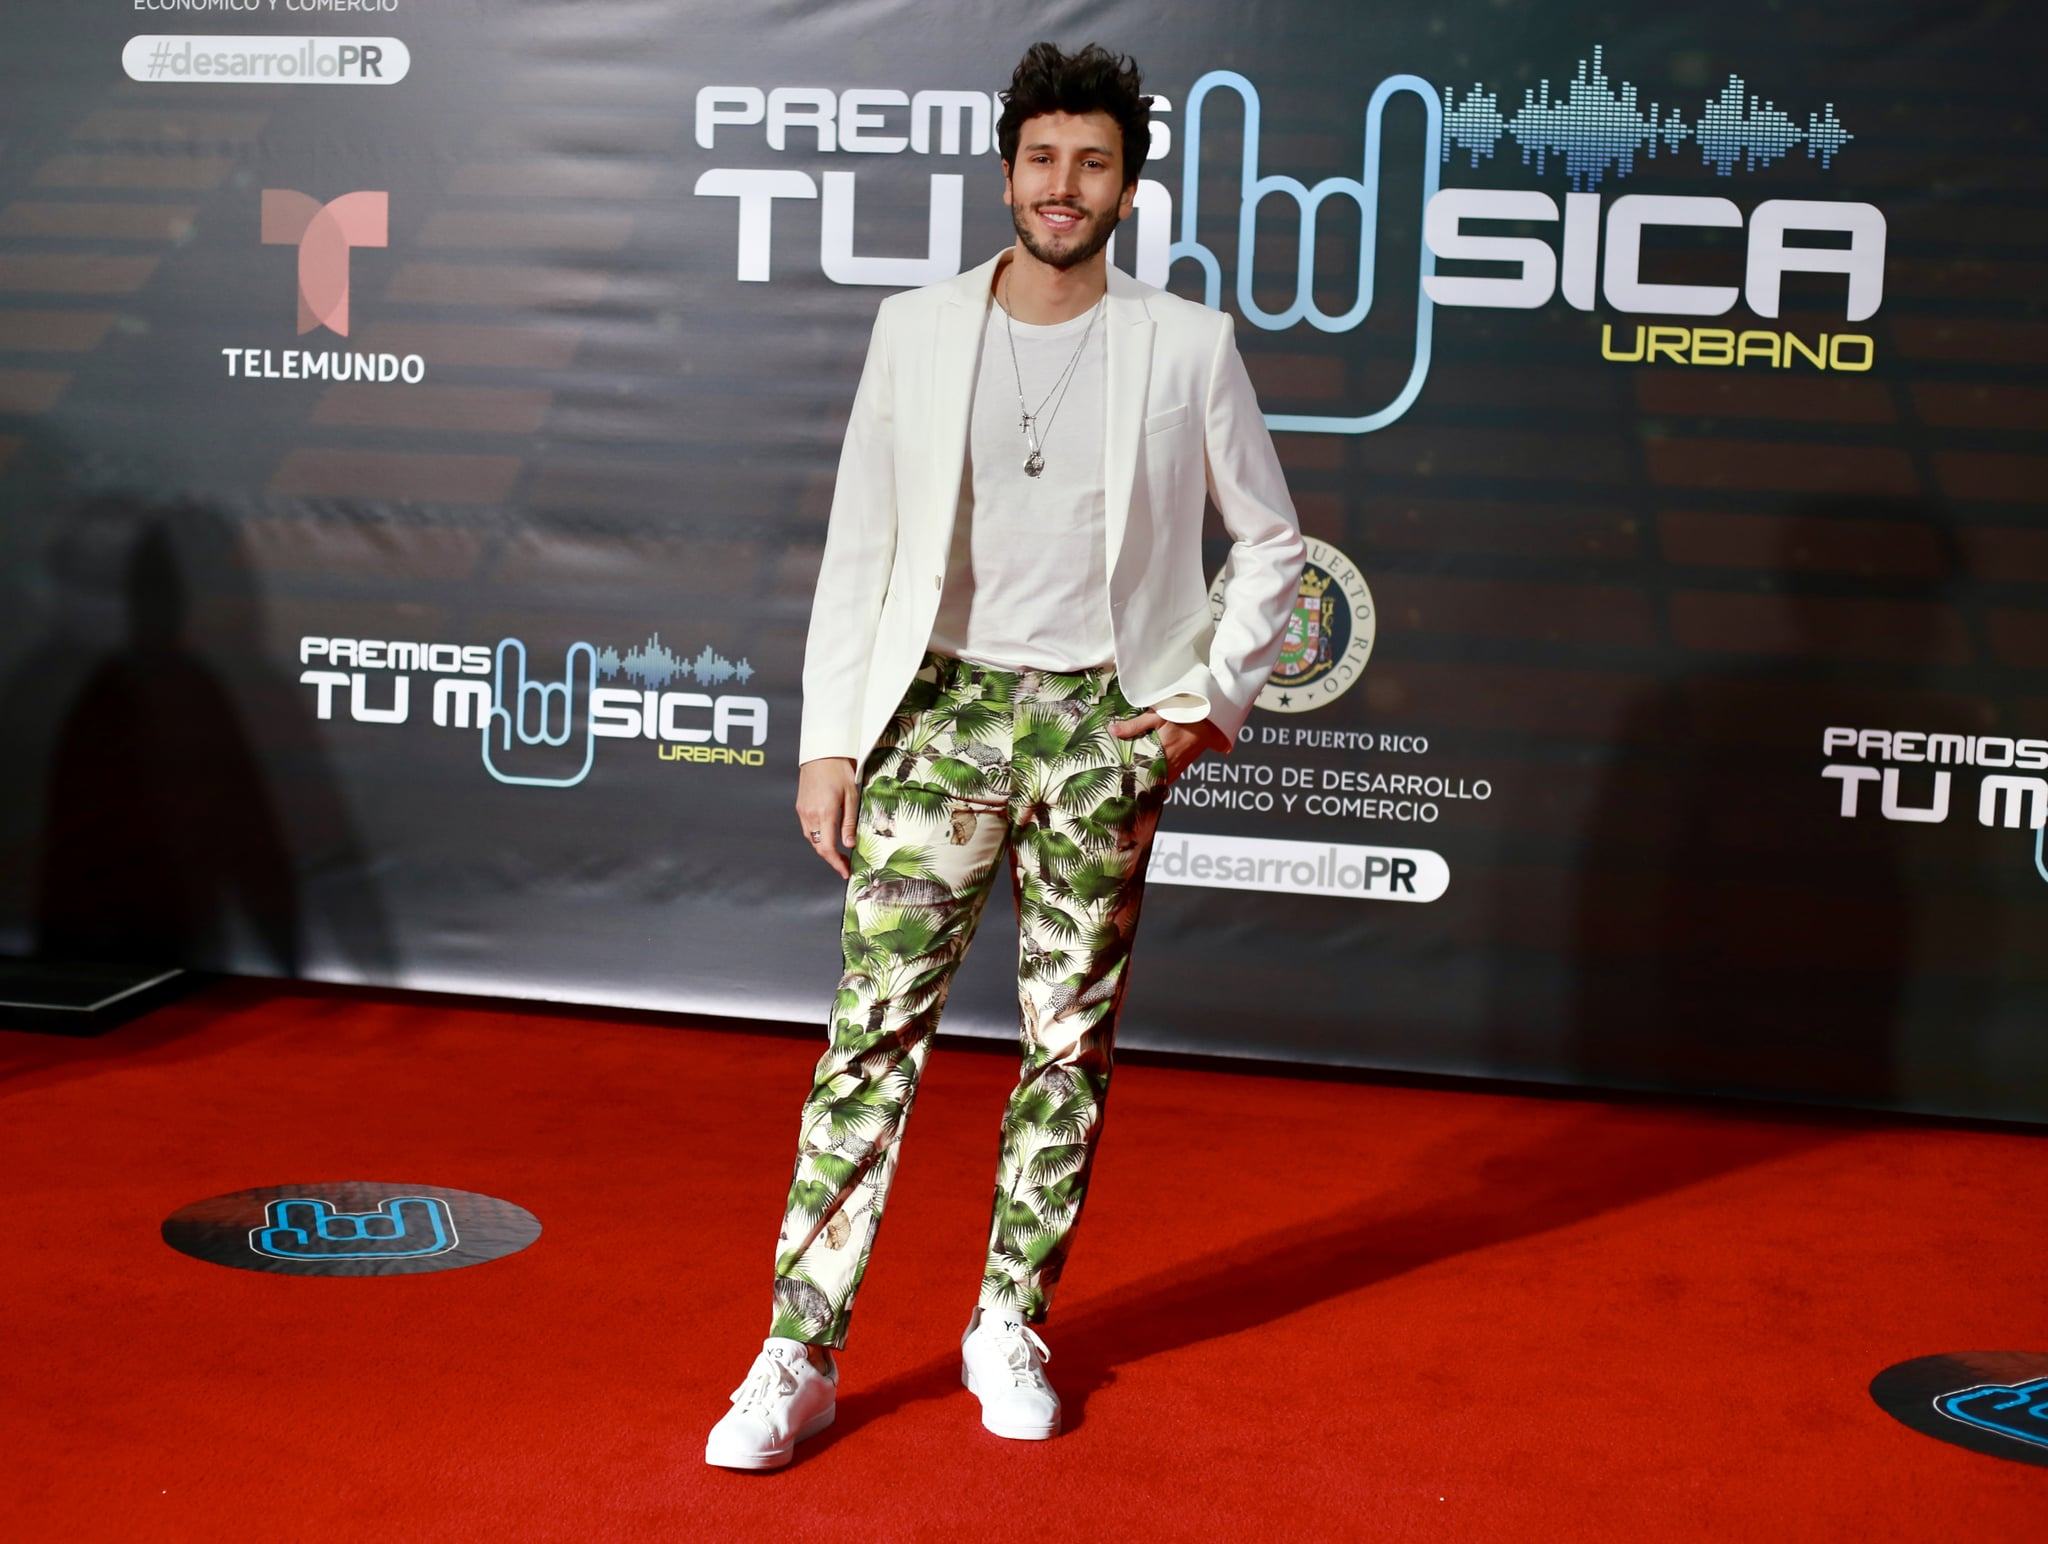 Sebastian Yatra Posted a Video Singing a Shawn Mendes Song, and Now I Feel Incredibly Relaxed